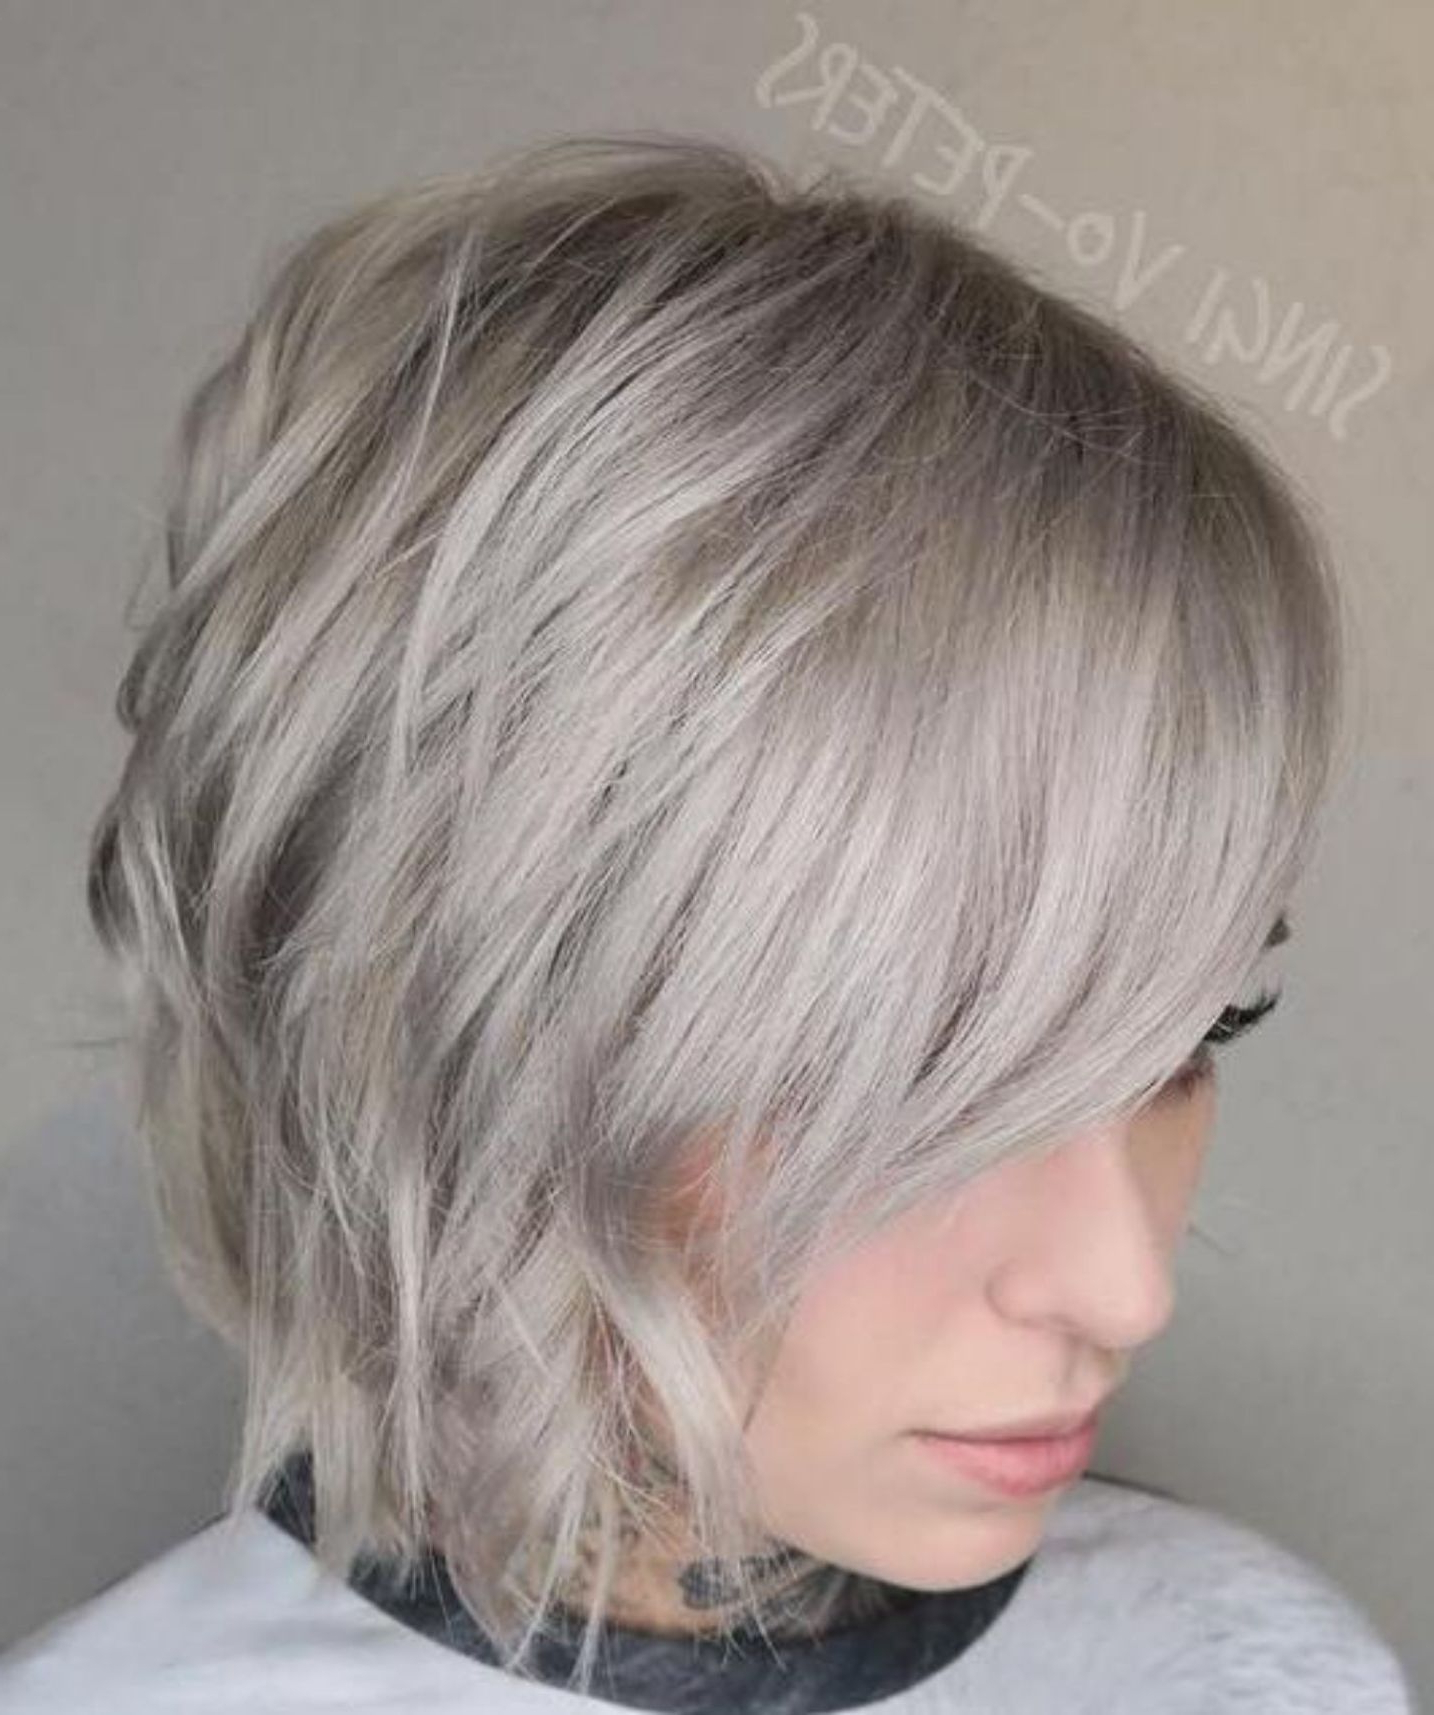 Famous Short Shag Haircuts With Side Bangs Throughout 60 Short Shag Hairstyles That You Simply Can't Miss In (View 9 of 20)